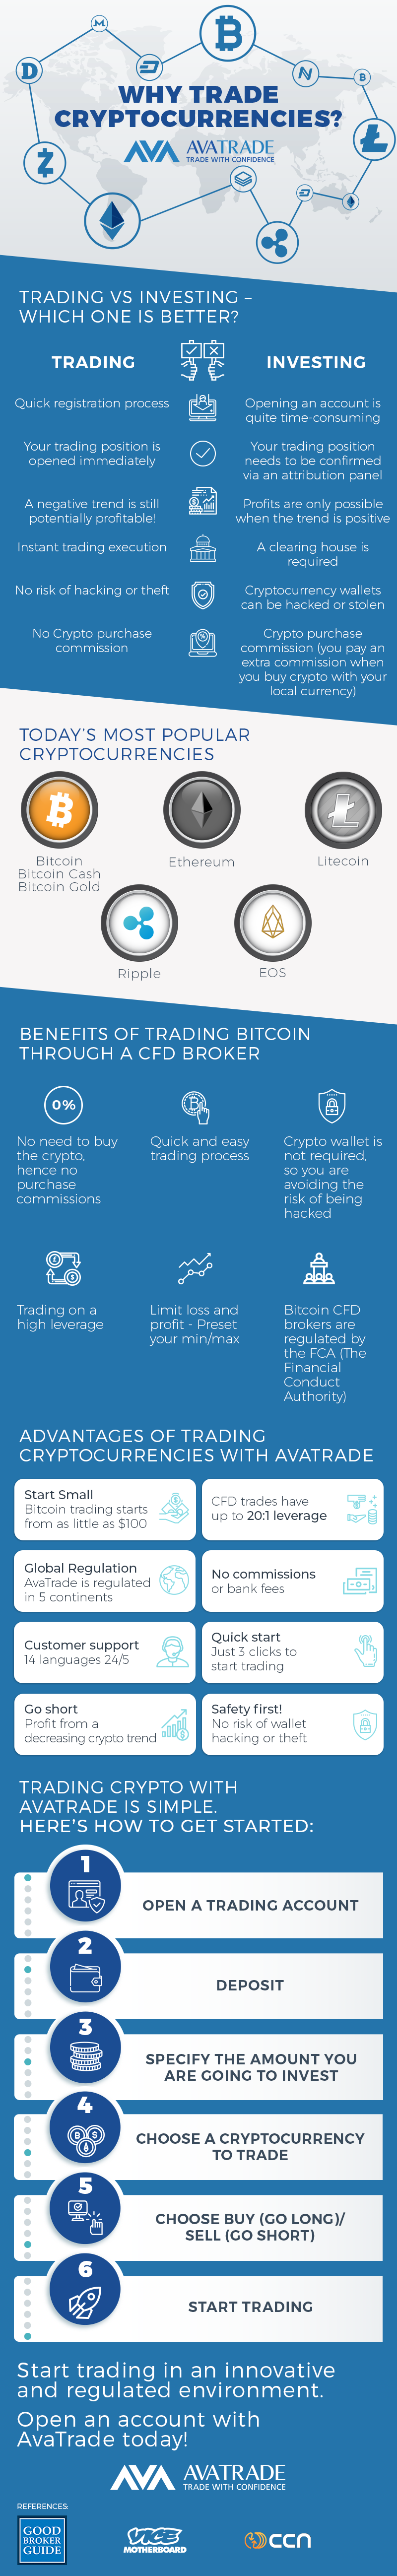 Why Trading Cryptocurrency CFDs makes sense